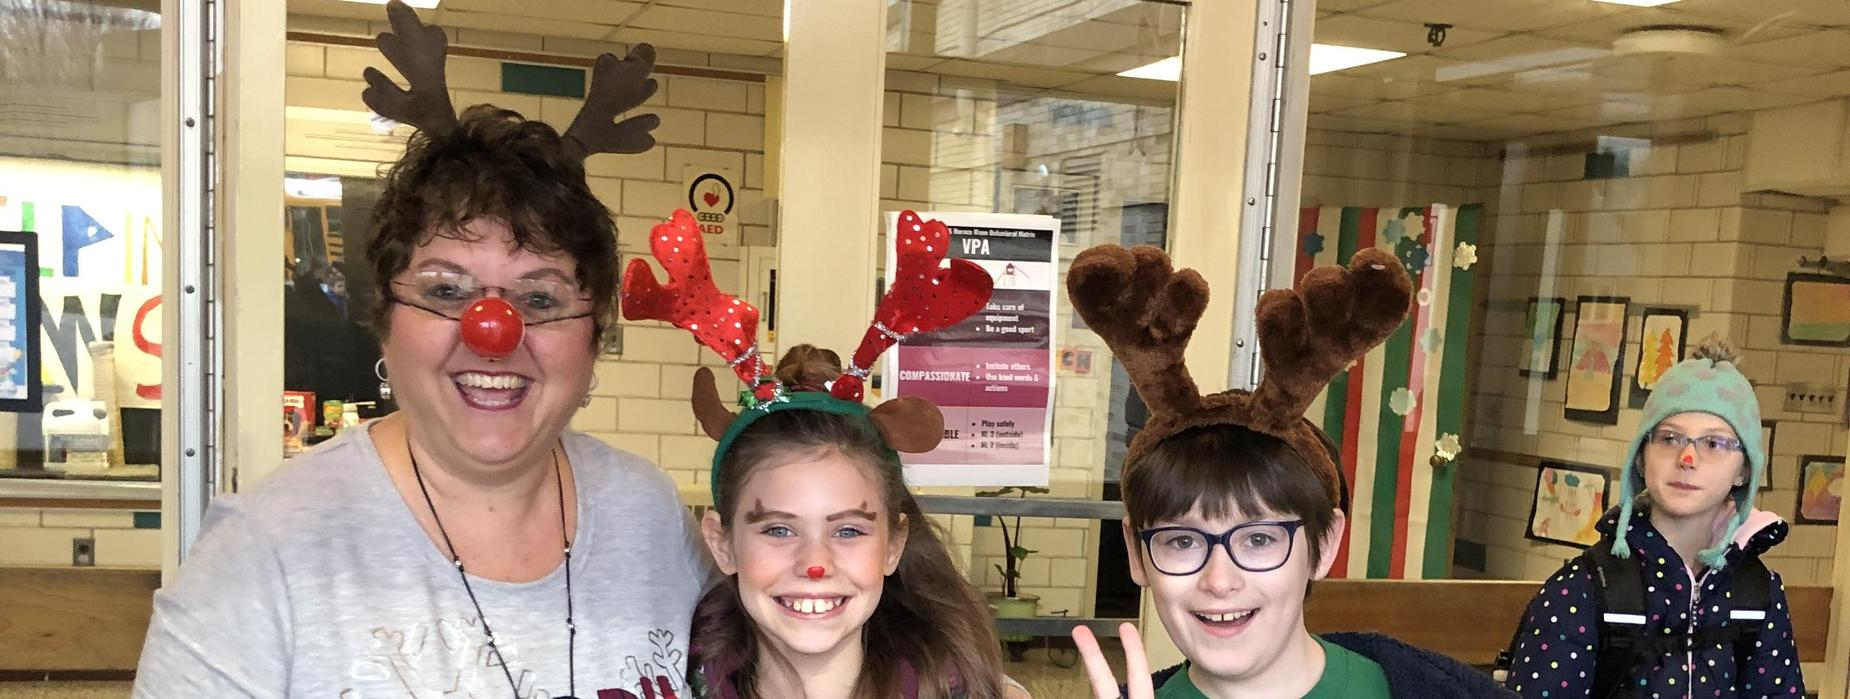 Rudolph's Day